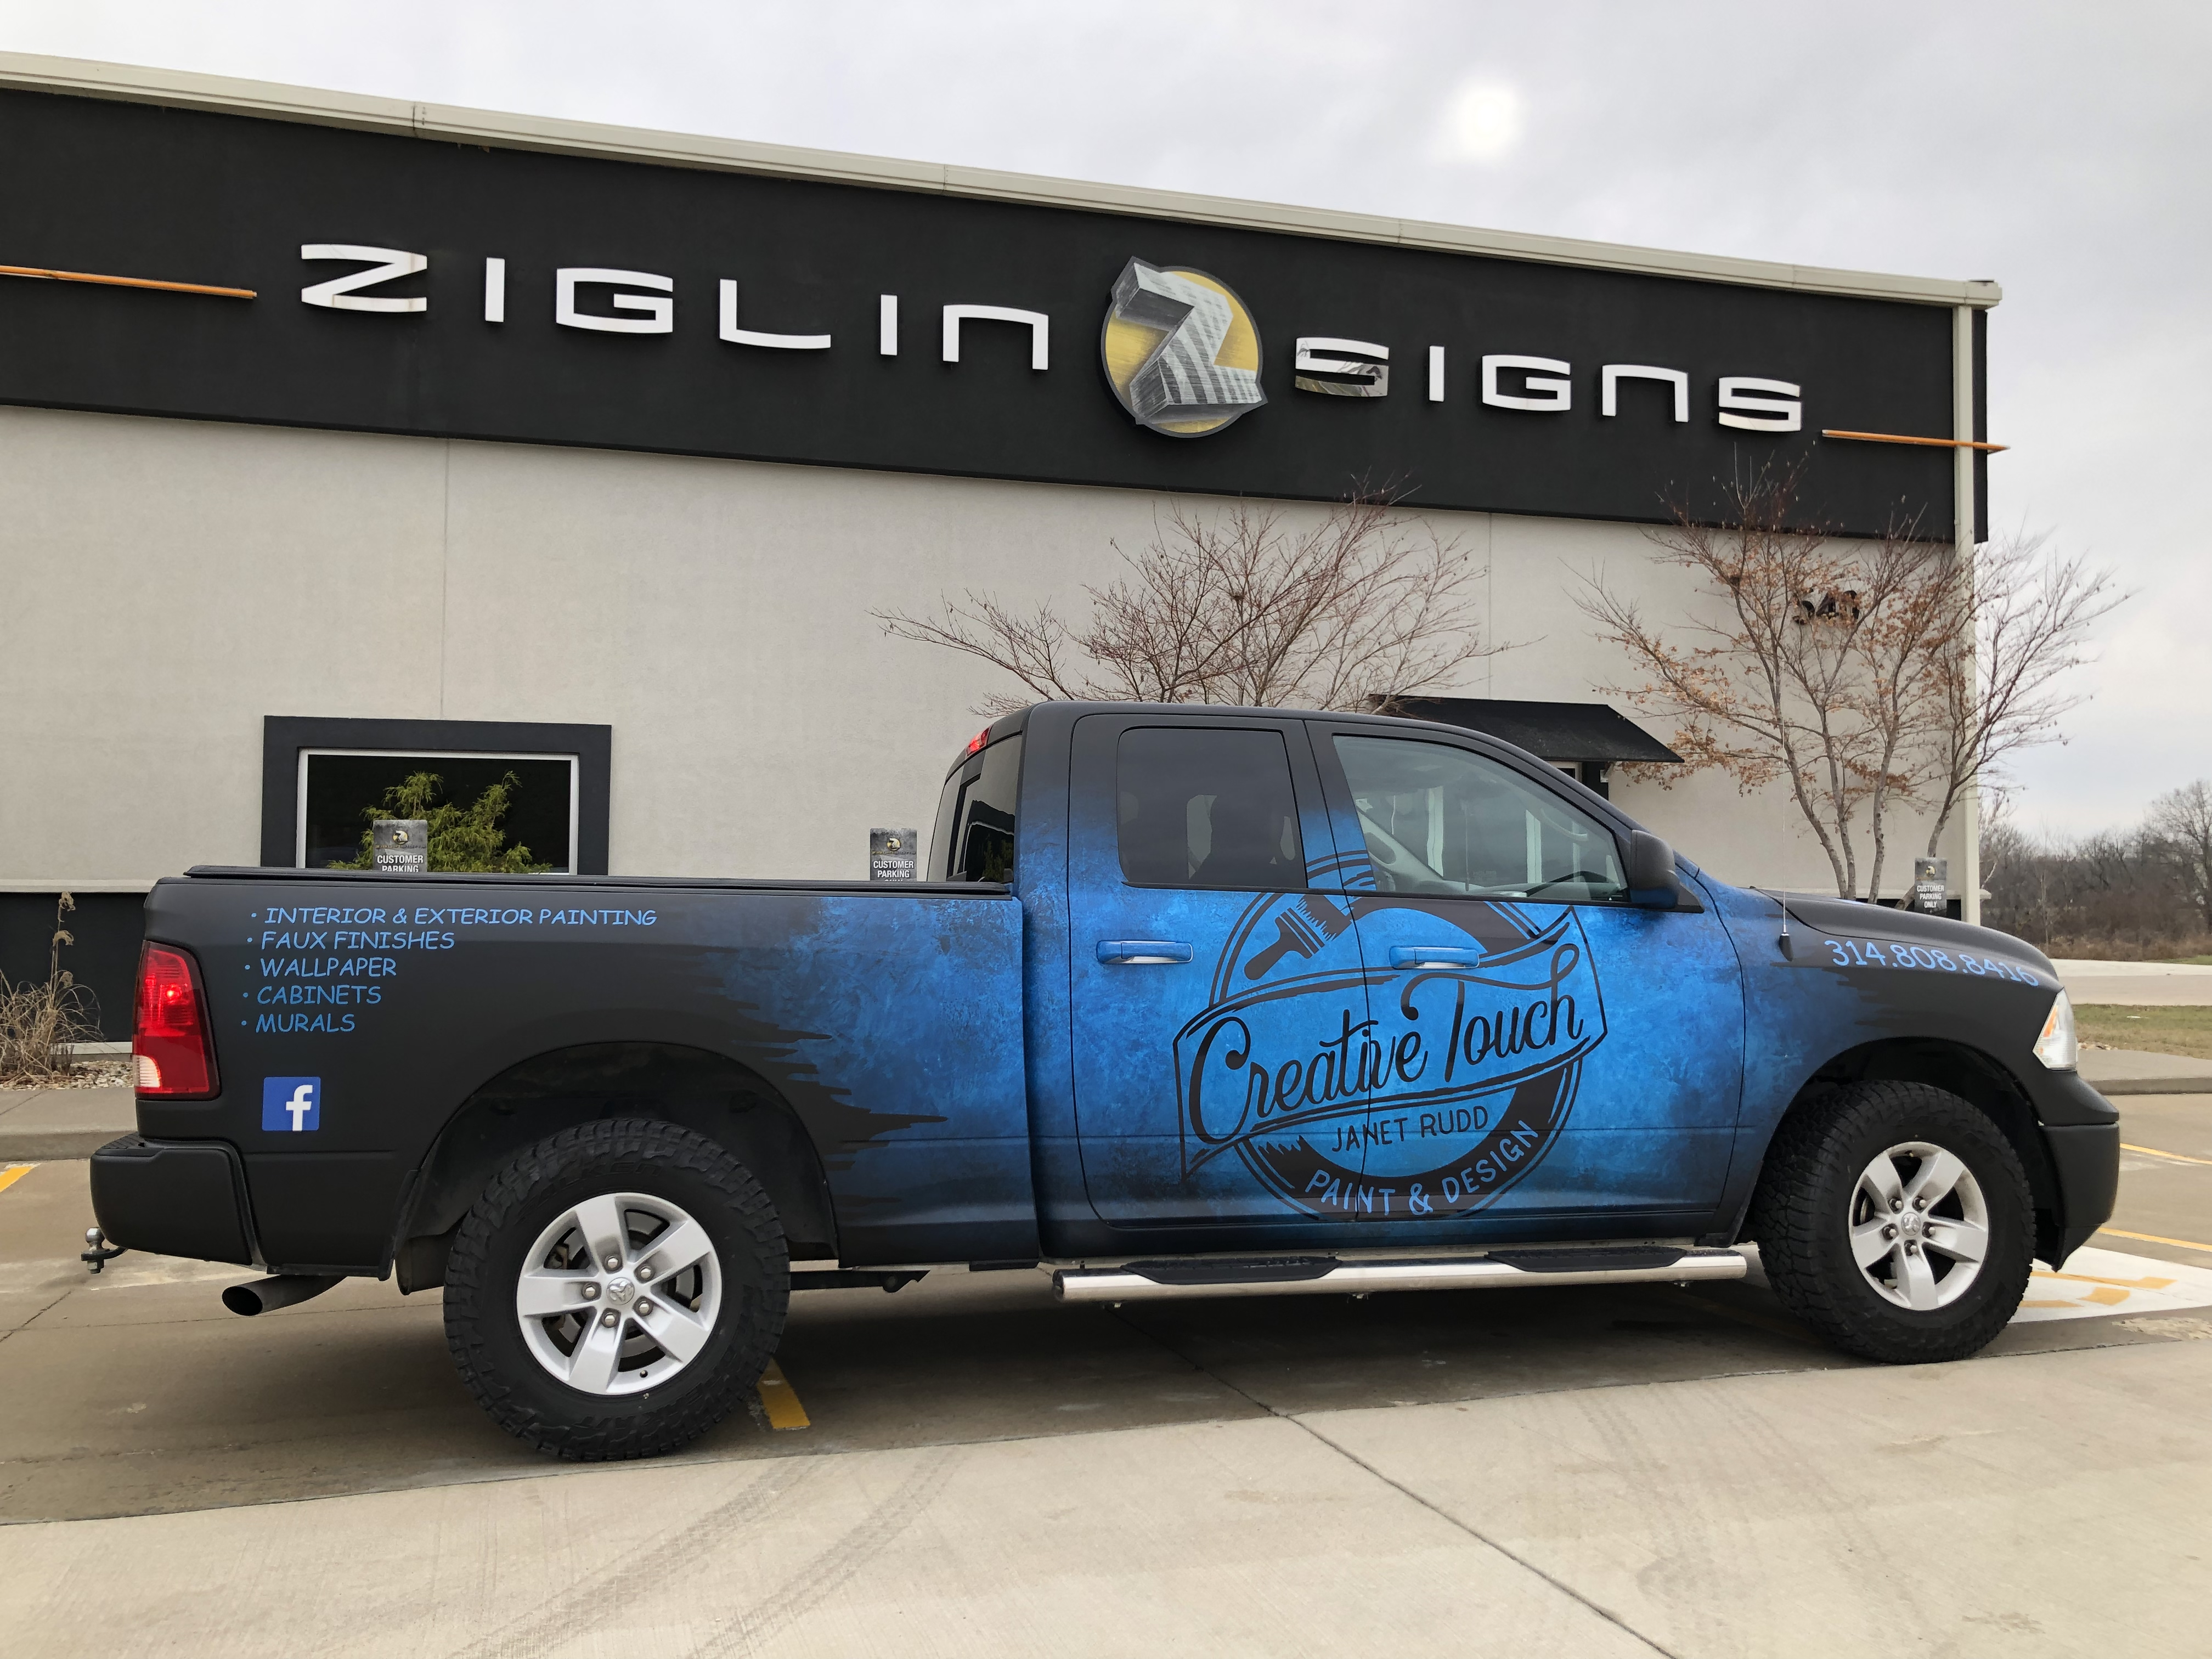 Creative Touch Paint & Design Commercial Vehicle Wrap